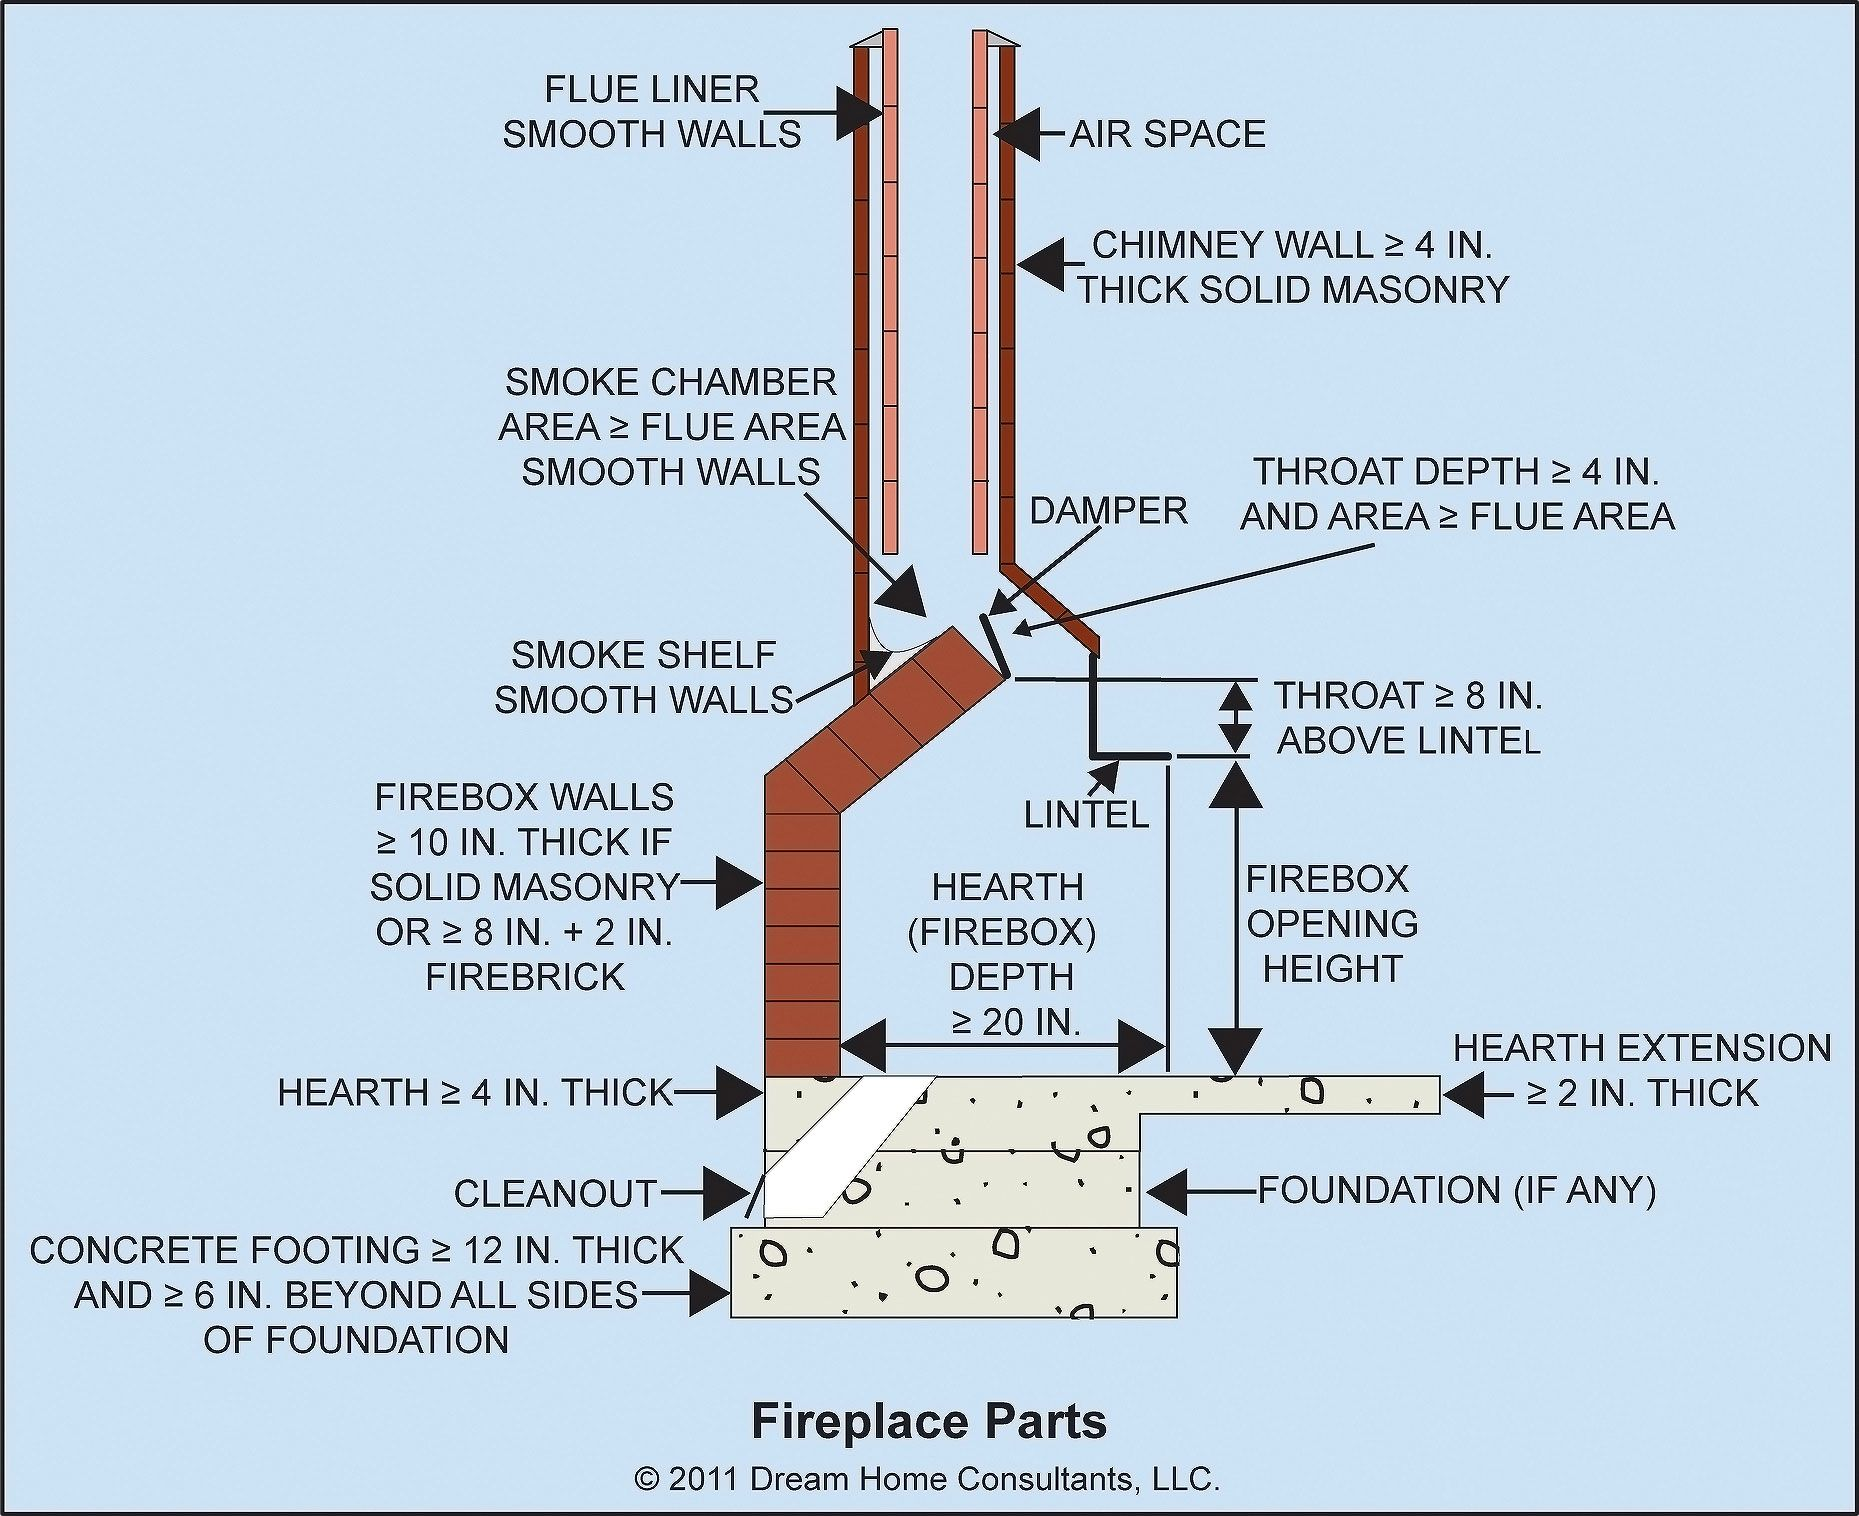 medium resolution of firebox diagram fireplace parts home fireplace fireplaces diagram construction fireplace set